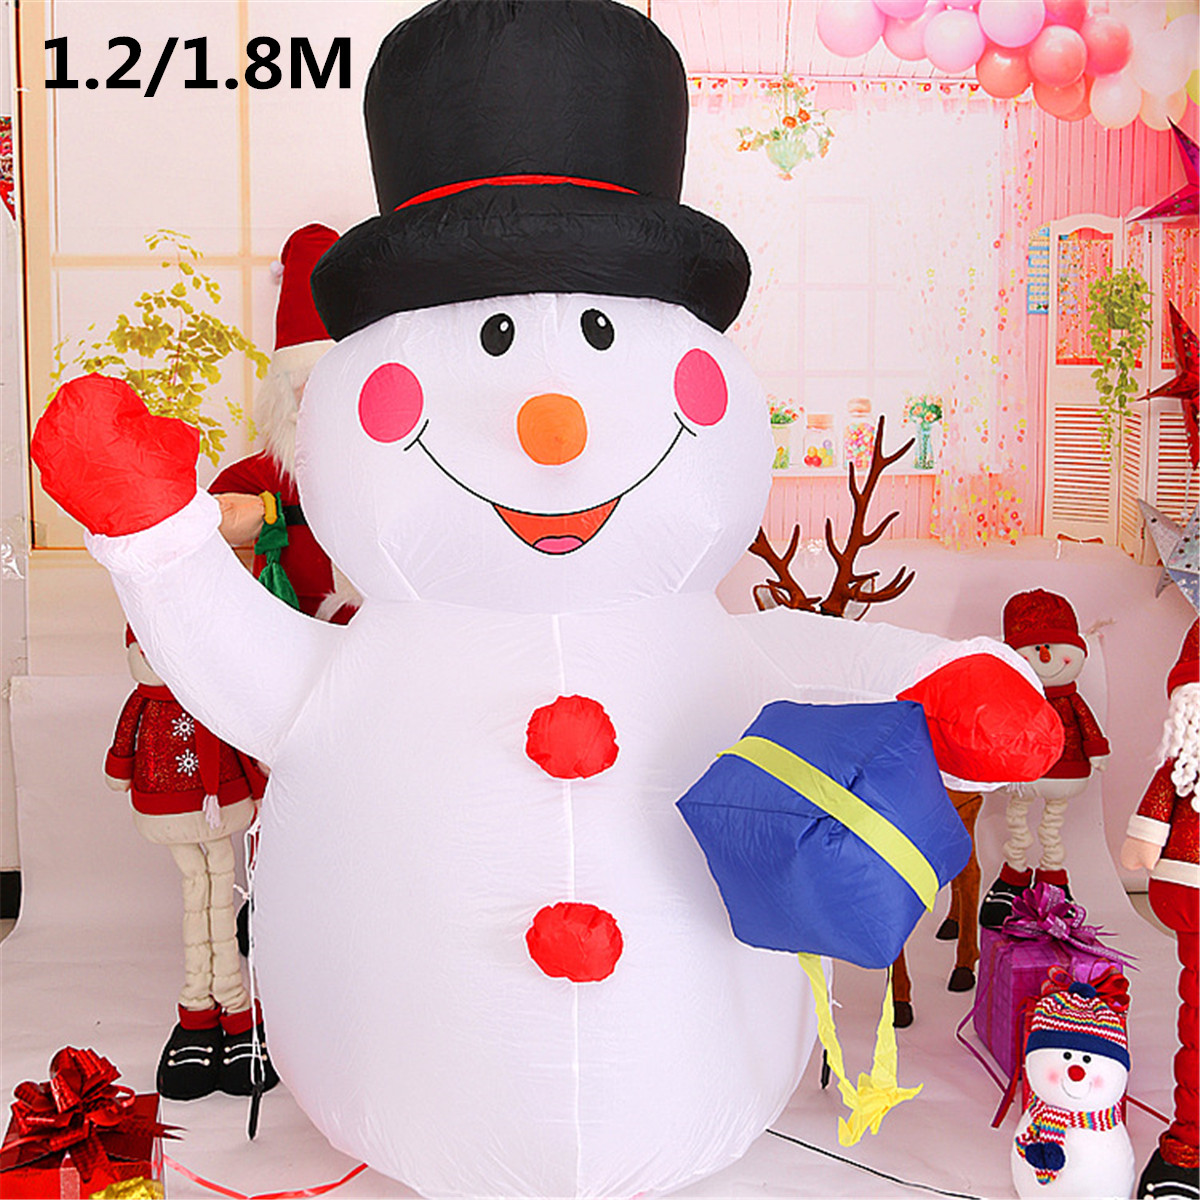 120cm/180cm LED Lights Air Inflatable Santa Claus Snowman Air Blown Christmas Holiday Lighting Christmas Birthday Party Decor cartoon christmas santa claus printed home decor pillow case